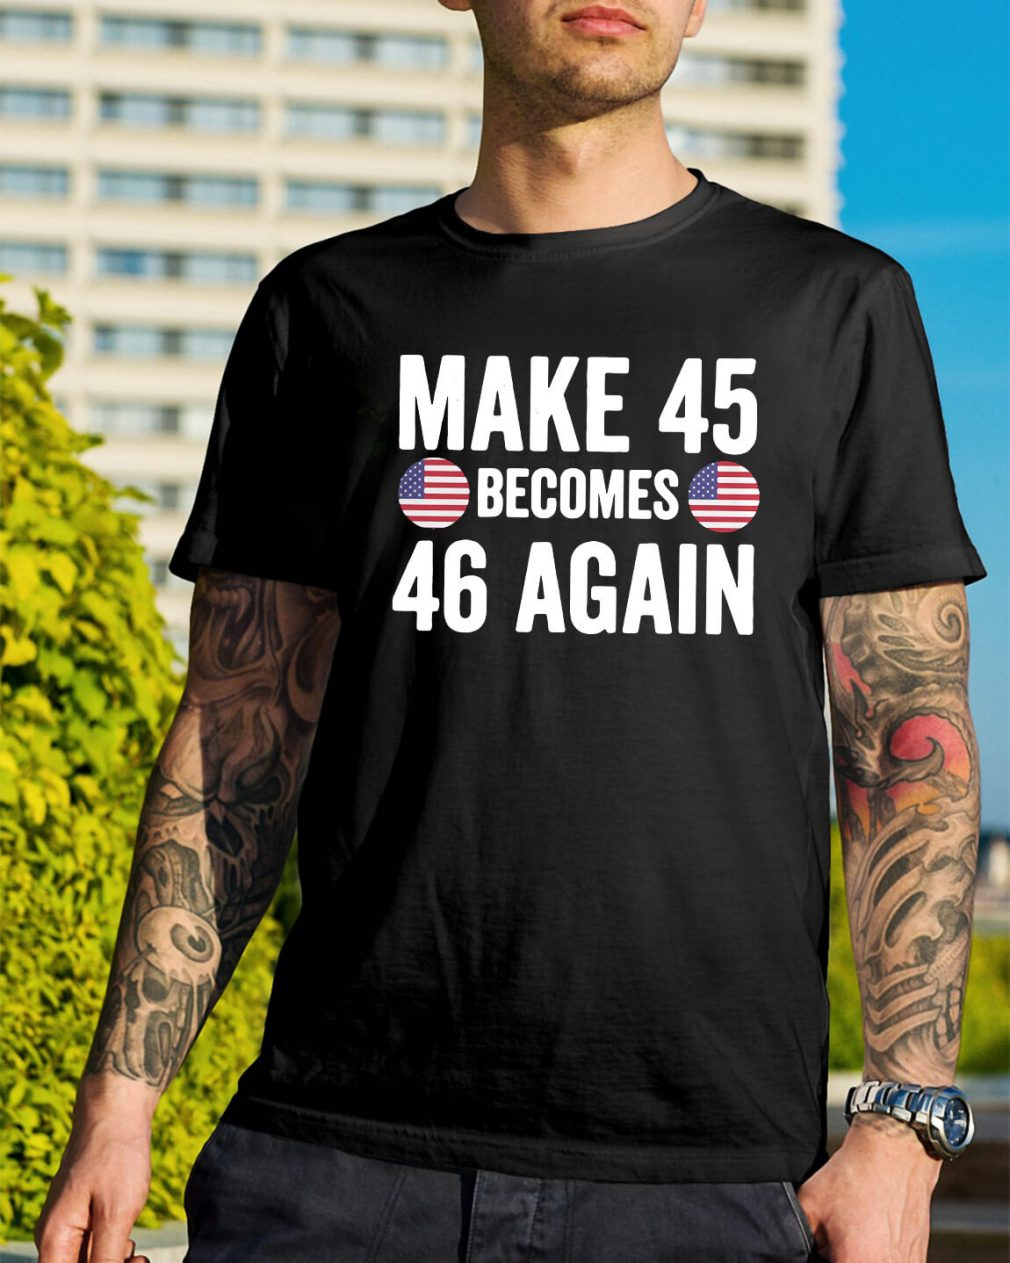 Make 45 becomes 46 again shirt